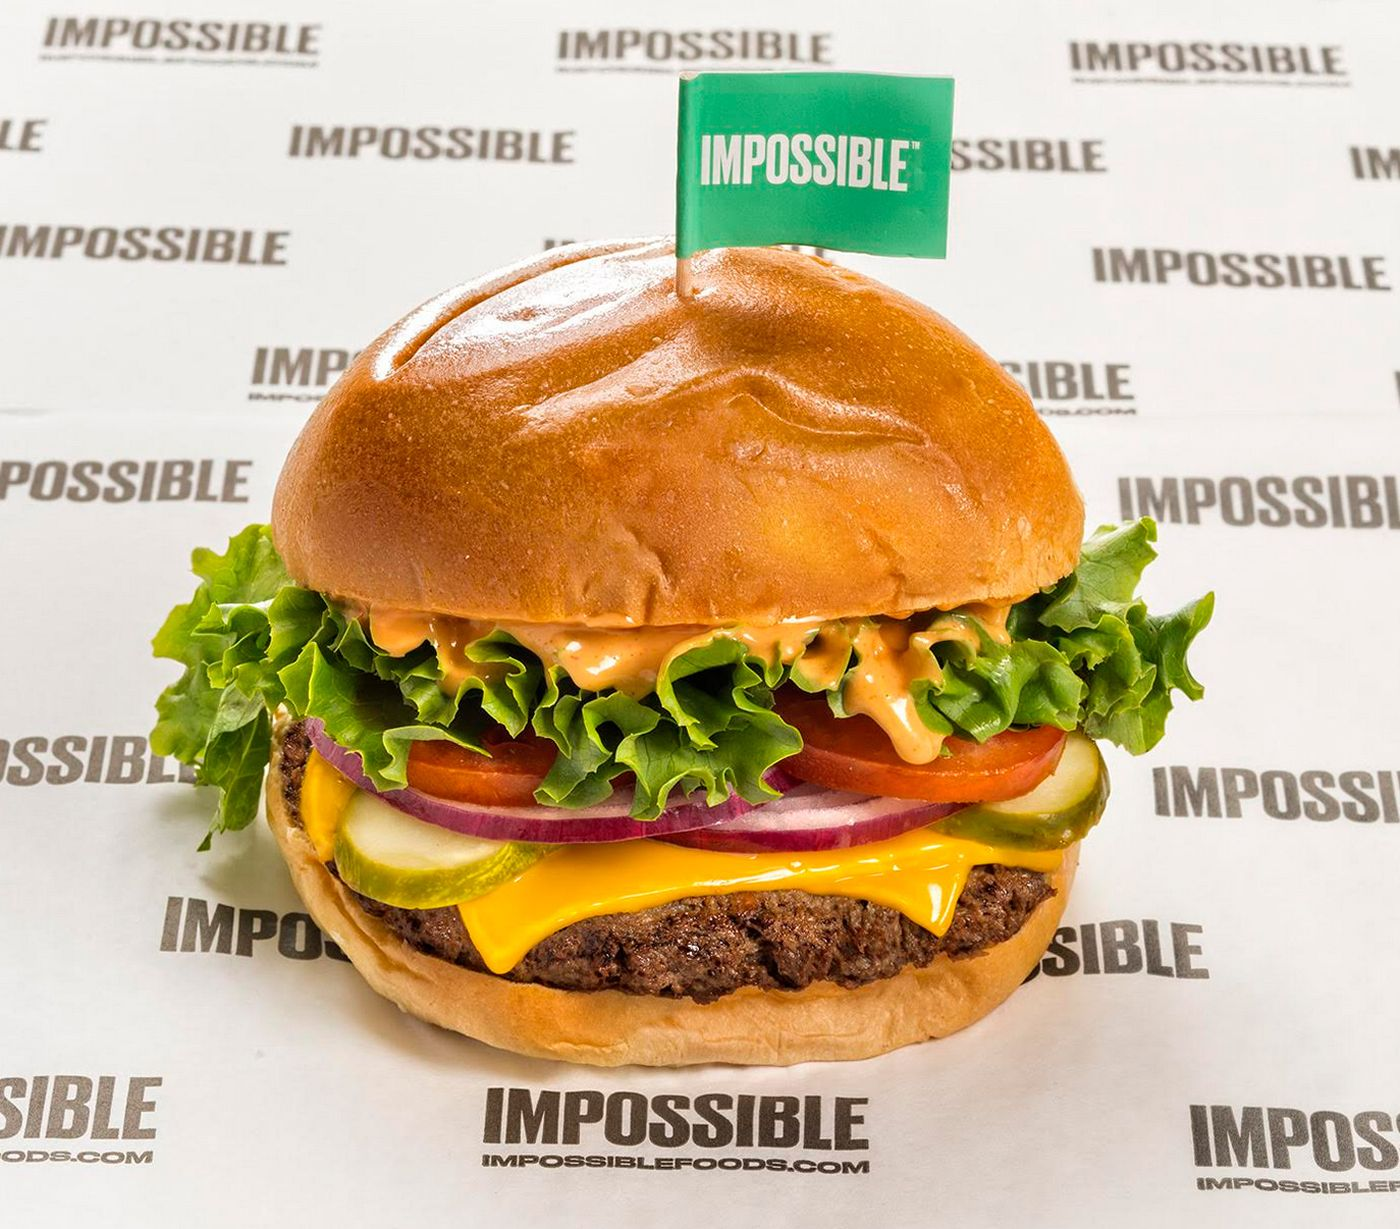 Arooga's Aligns with Impossible Foods to Become the First Full Service Restaurant Chain in Central Pa to Offer a Plant-based Meat - a Meat Free Option for Meat Lovers